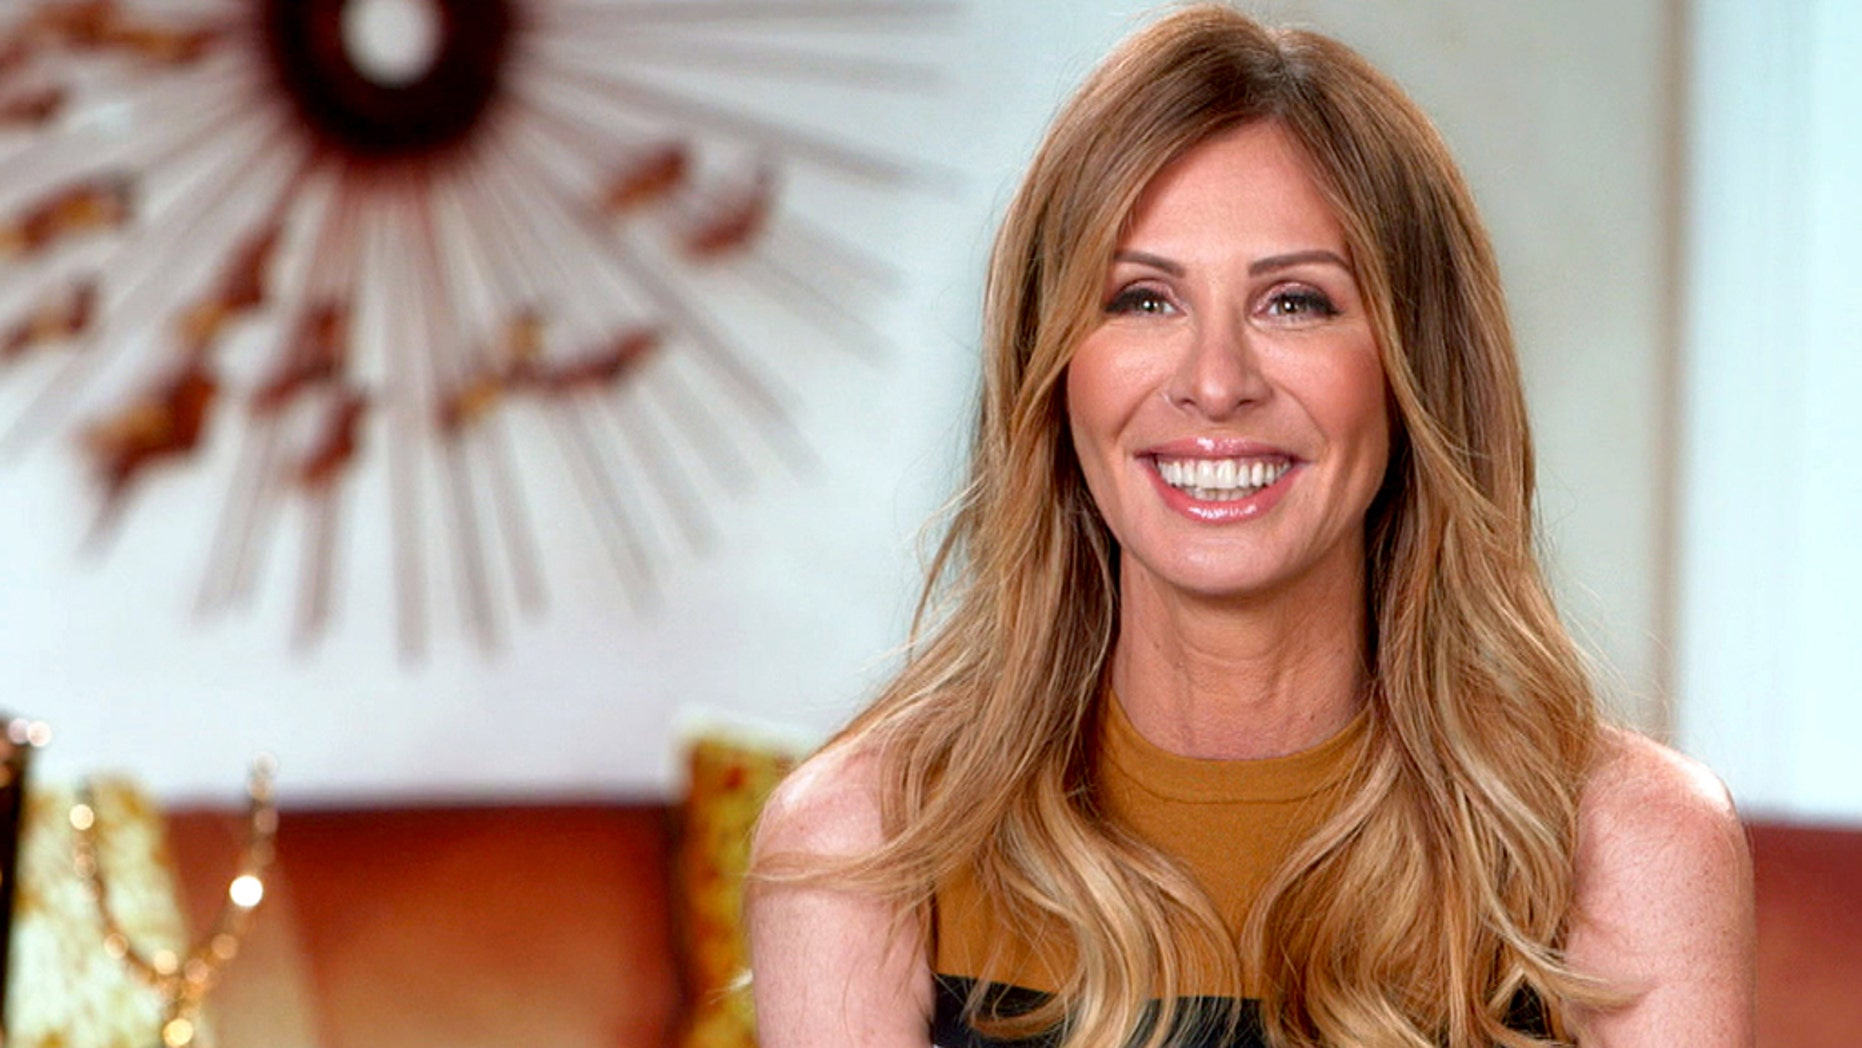 Carole Radziwill, who joined the Real Housewives of New York in 2012, announced on Wednesday she was leaving the Bravo reality series.